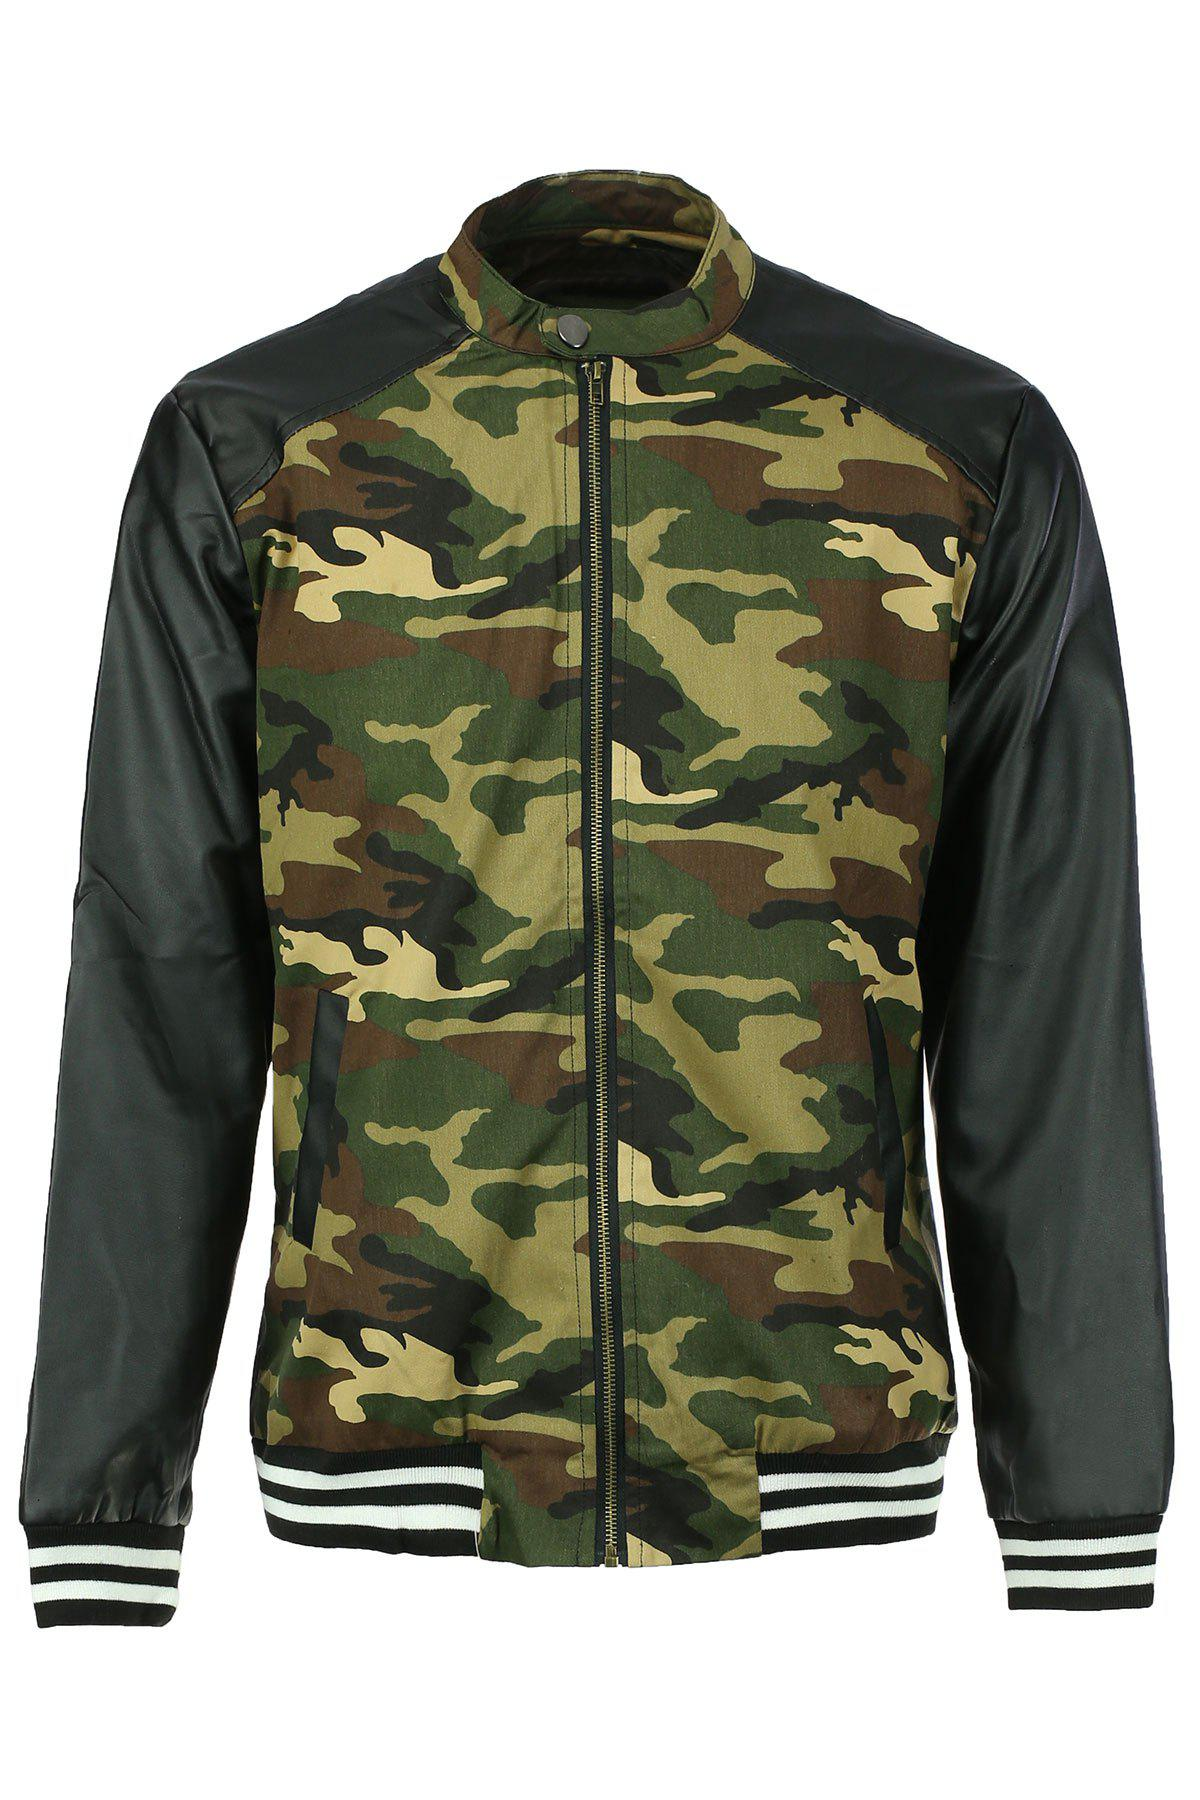 Stand Collar Camouflage Print Splicing Long Sleeve PU-Leather Men's Jacket - CAMOUFLAGE 3XL